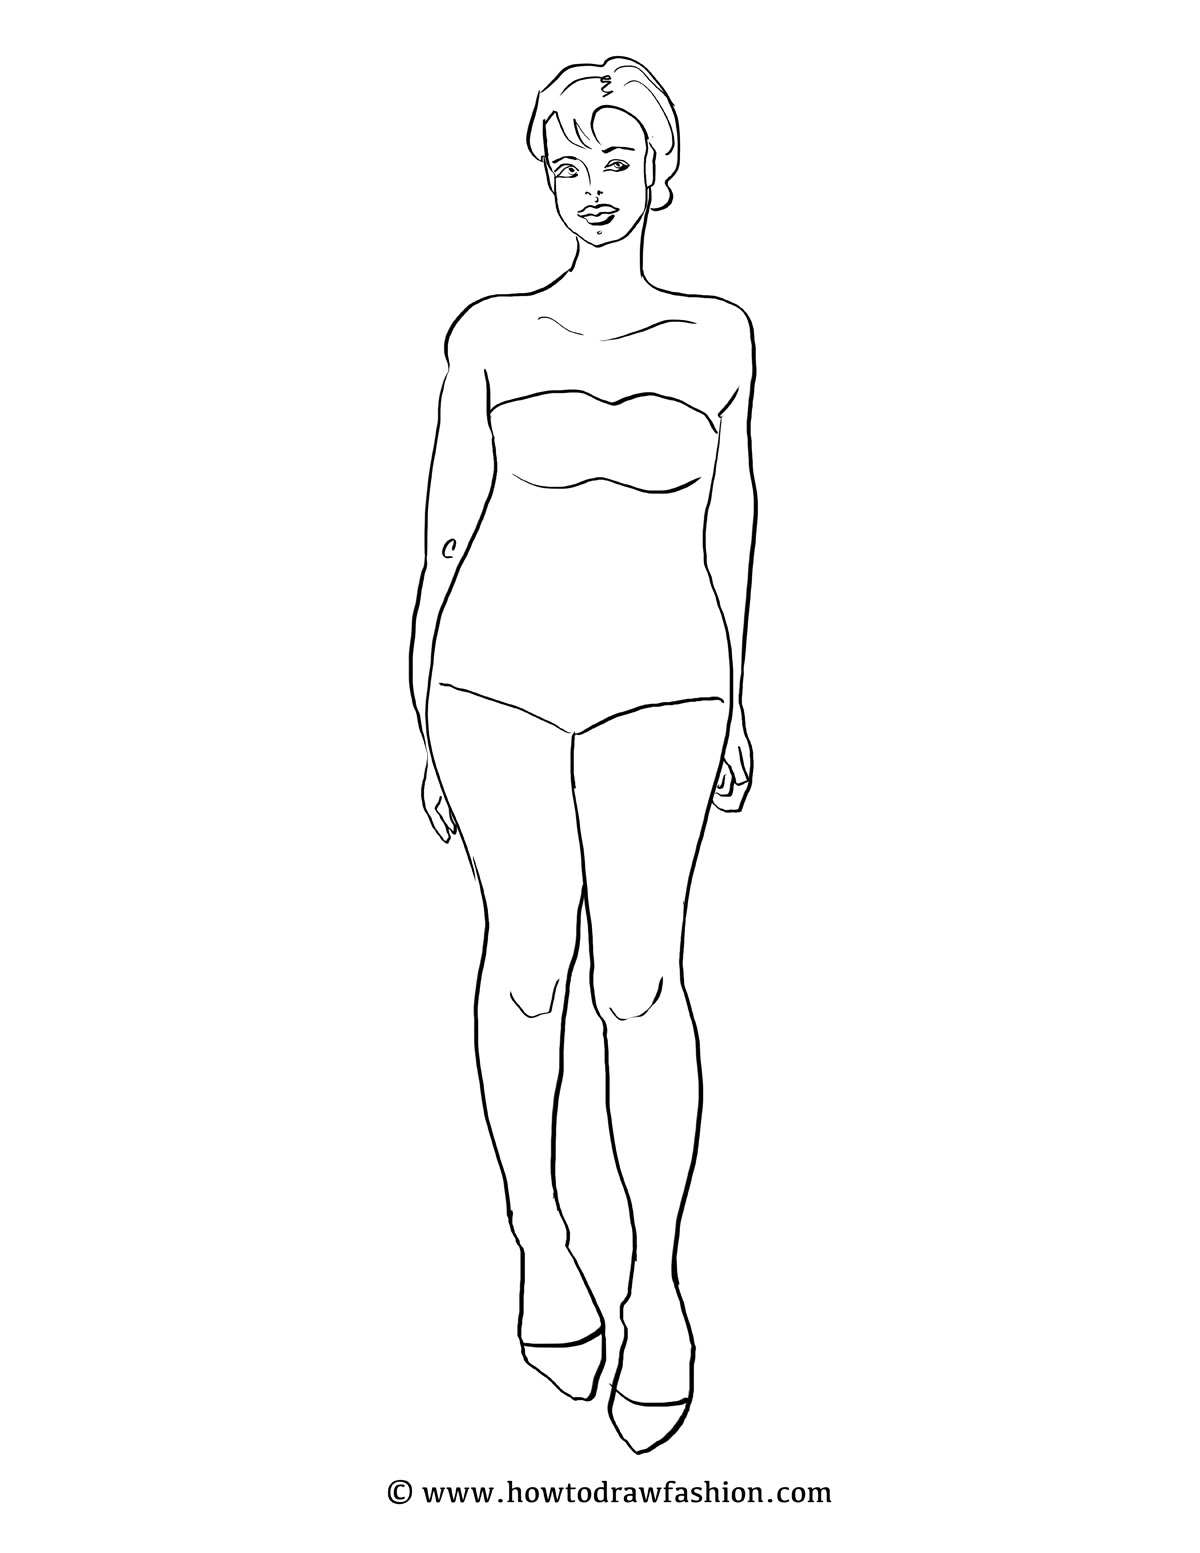 Drawing Outline Of Human Body At Getdrawings Free For Personal